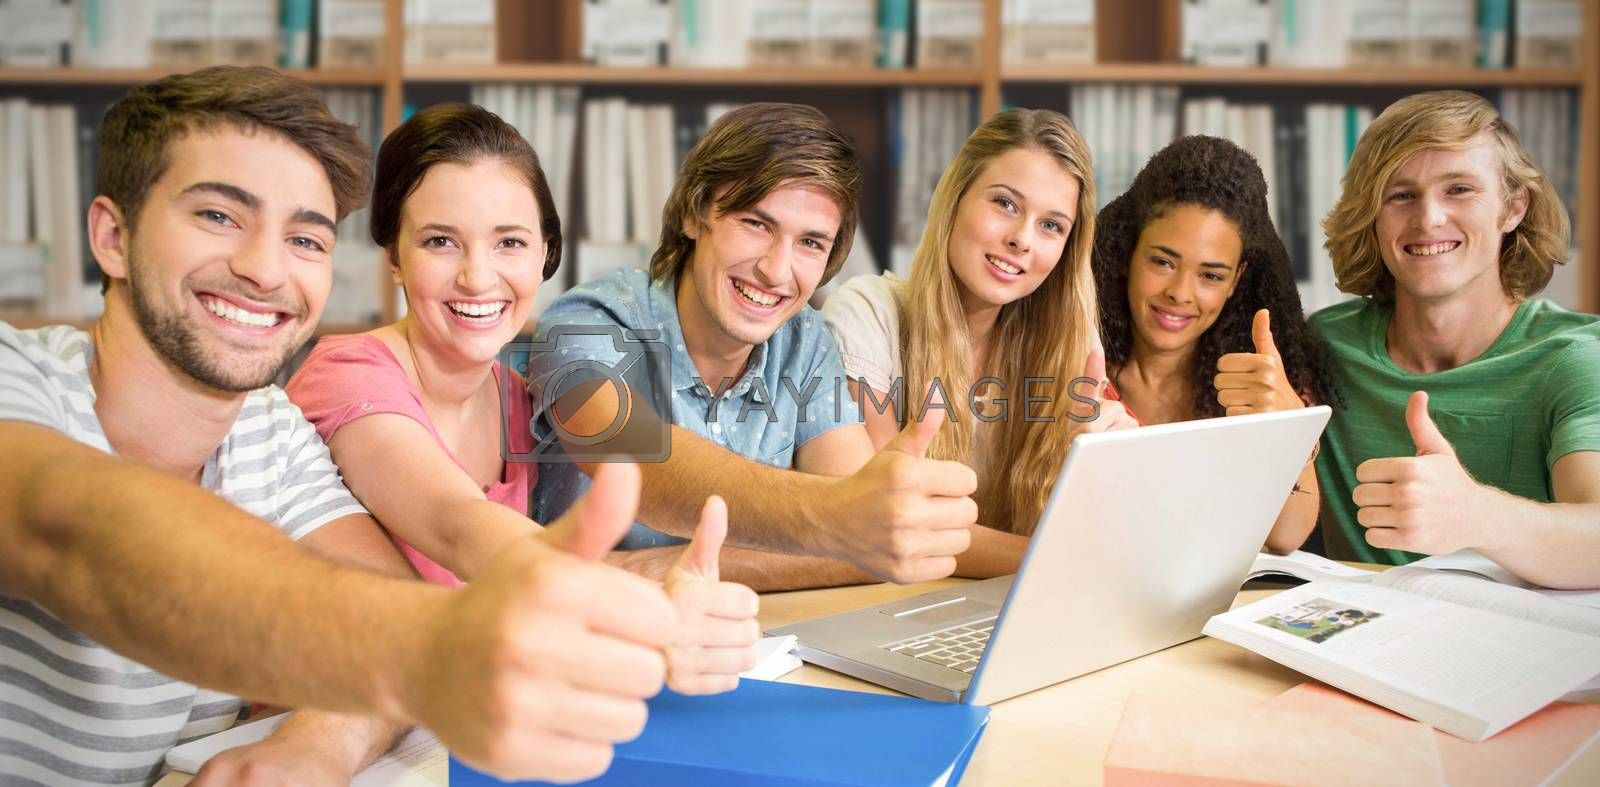 Composite image of college students gesturing thumbs up in library by Wavebreakmedia